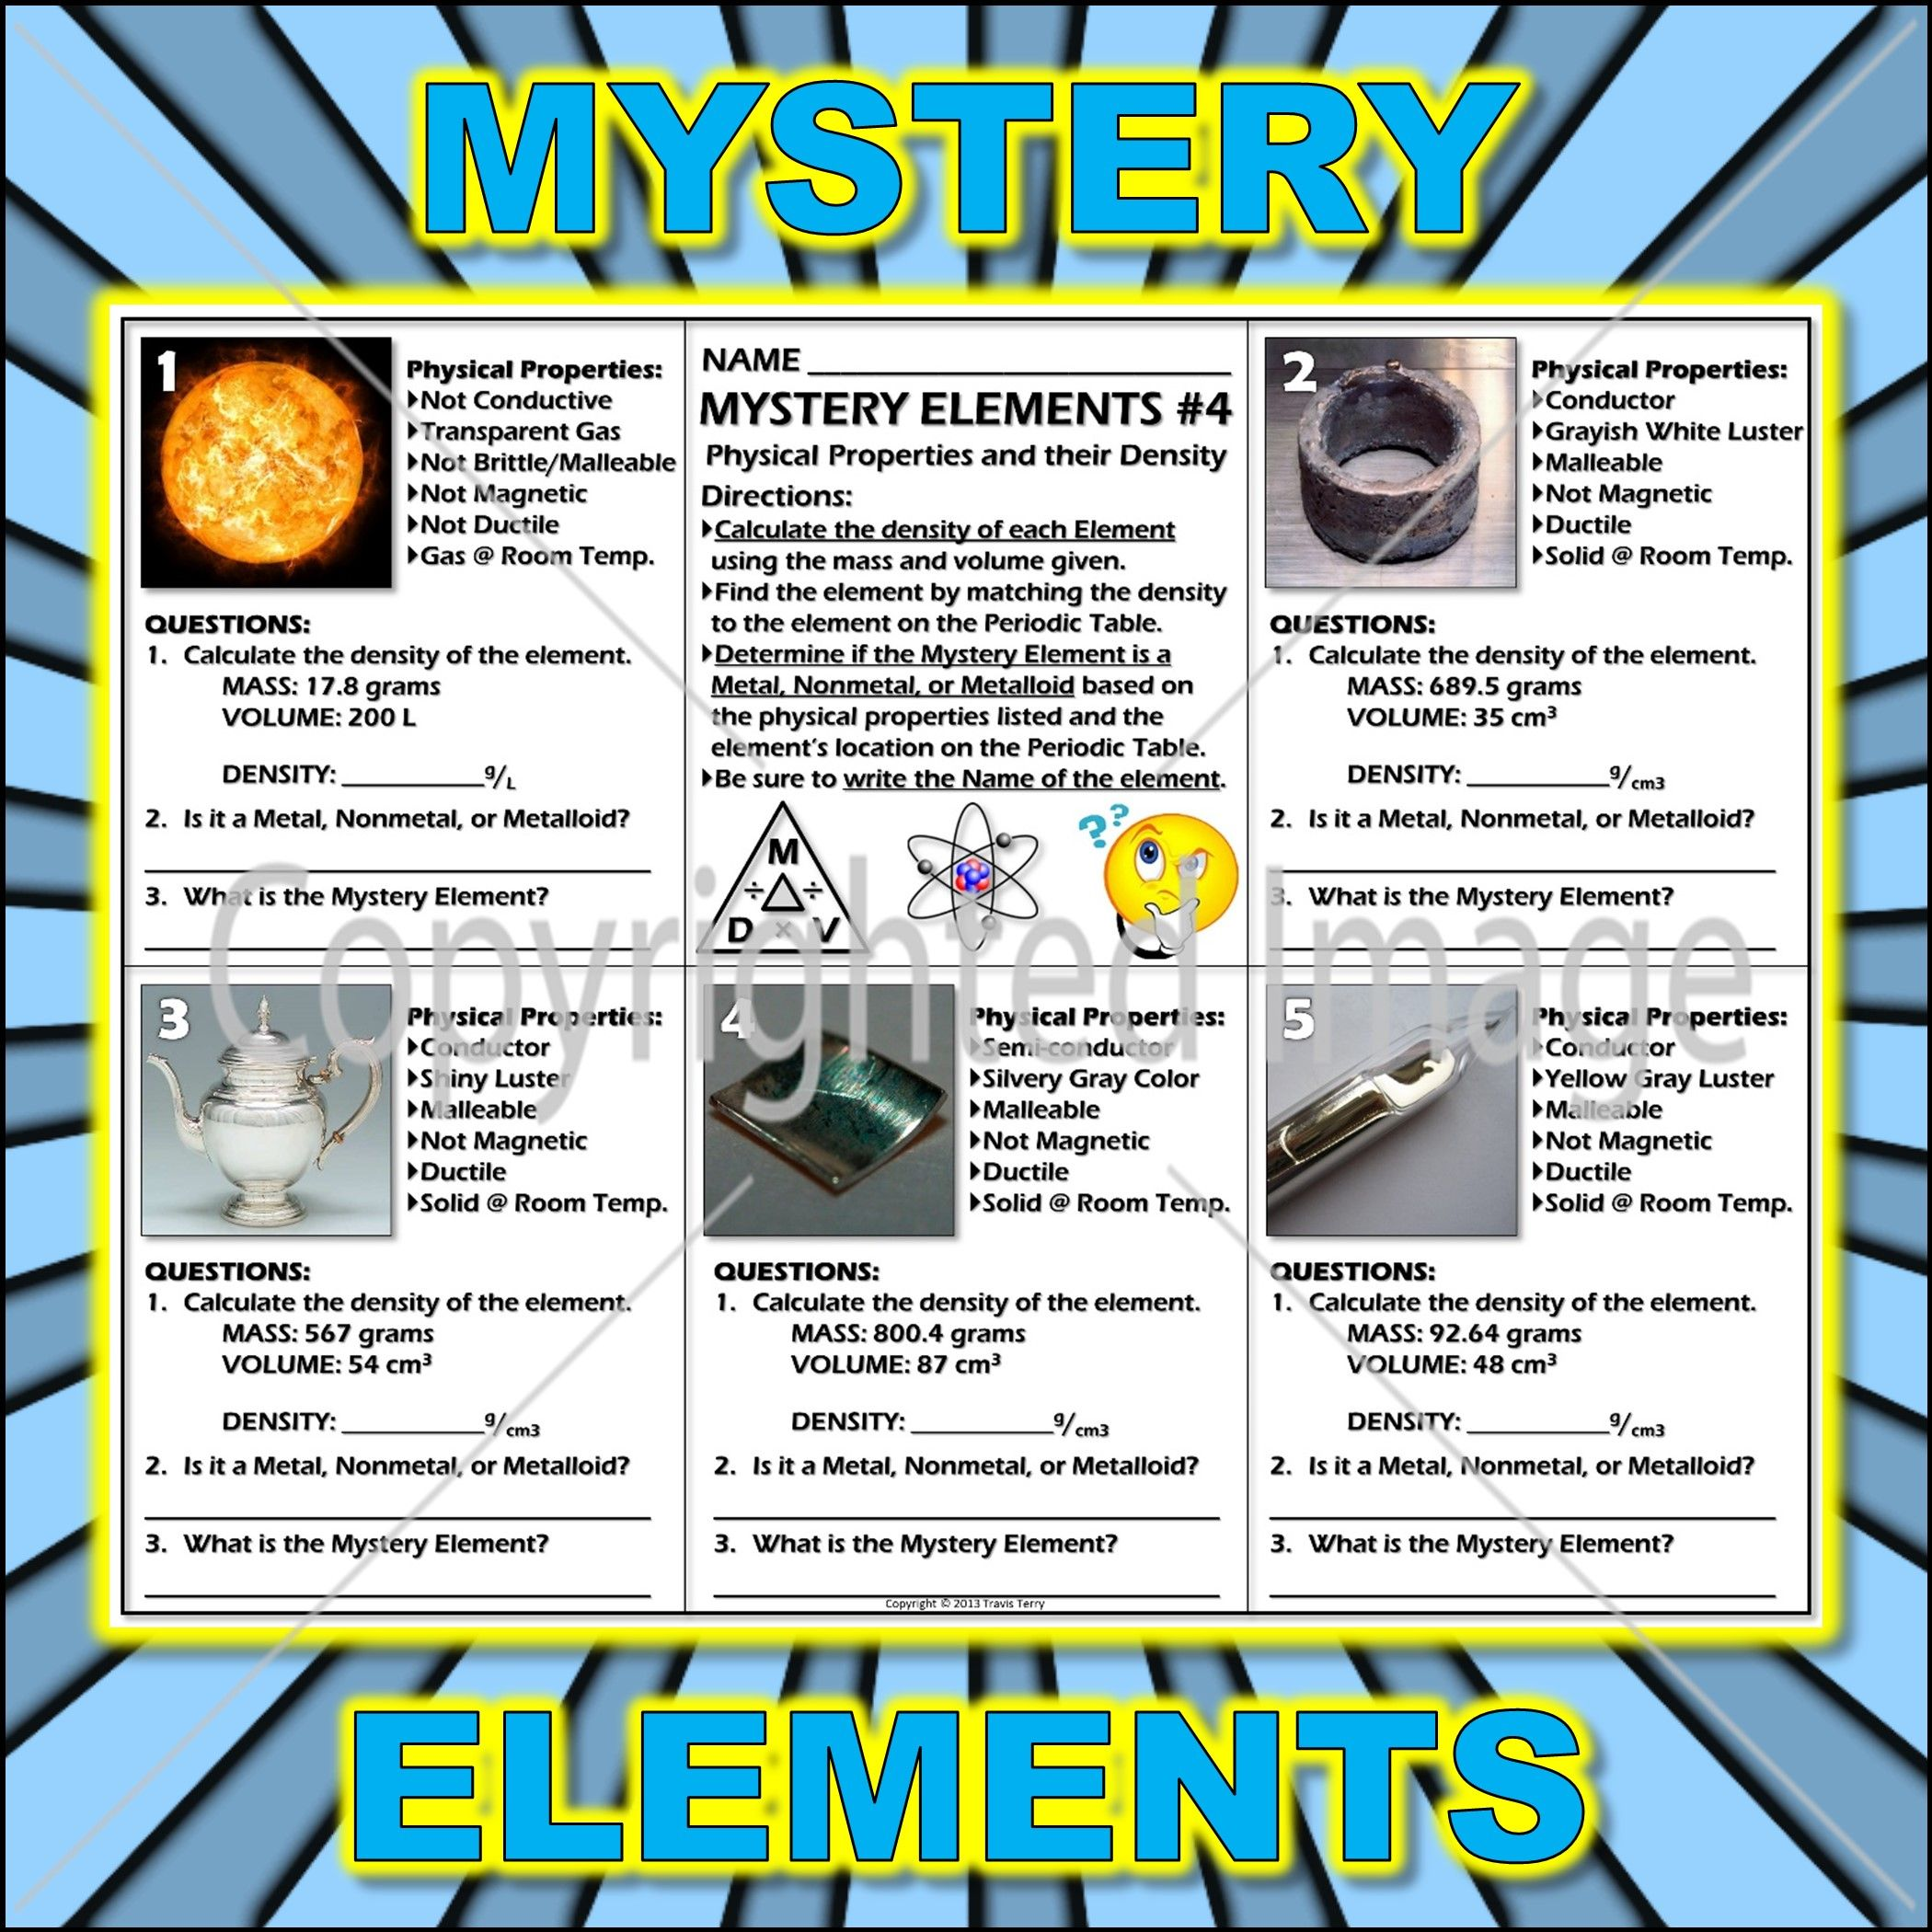 Worksheet Mystery Elements And Their Density Version 4